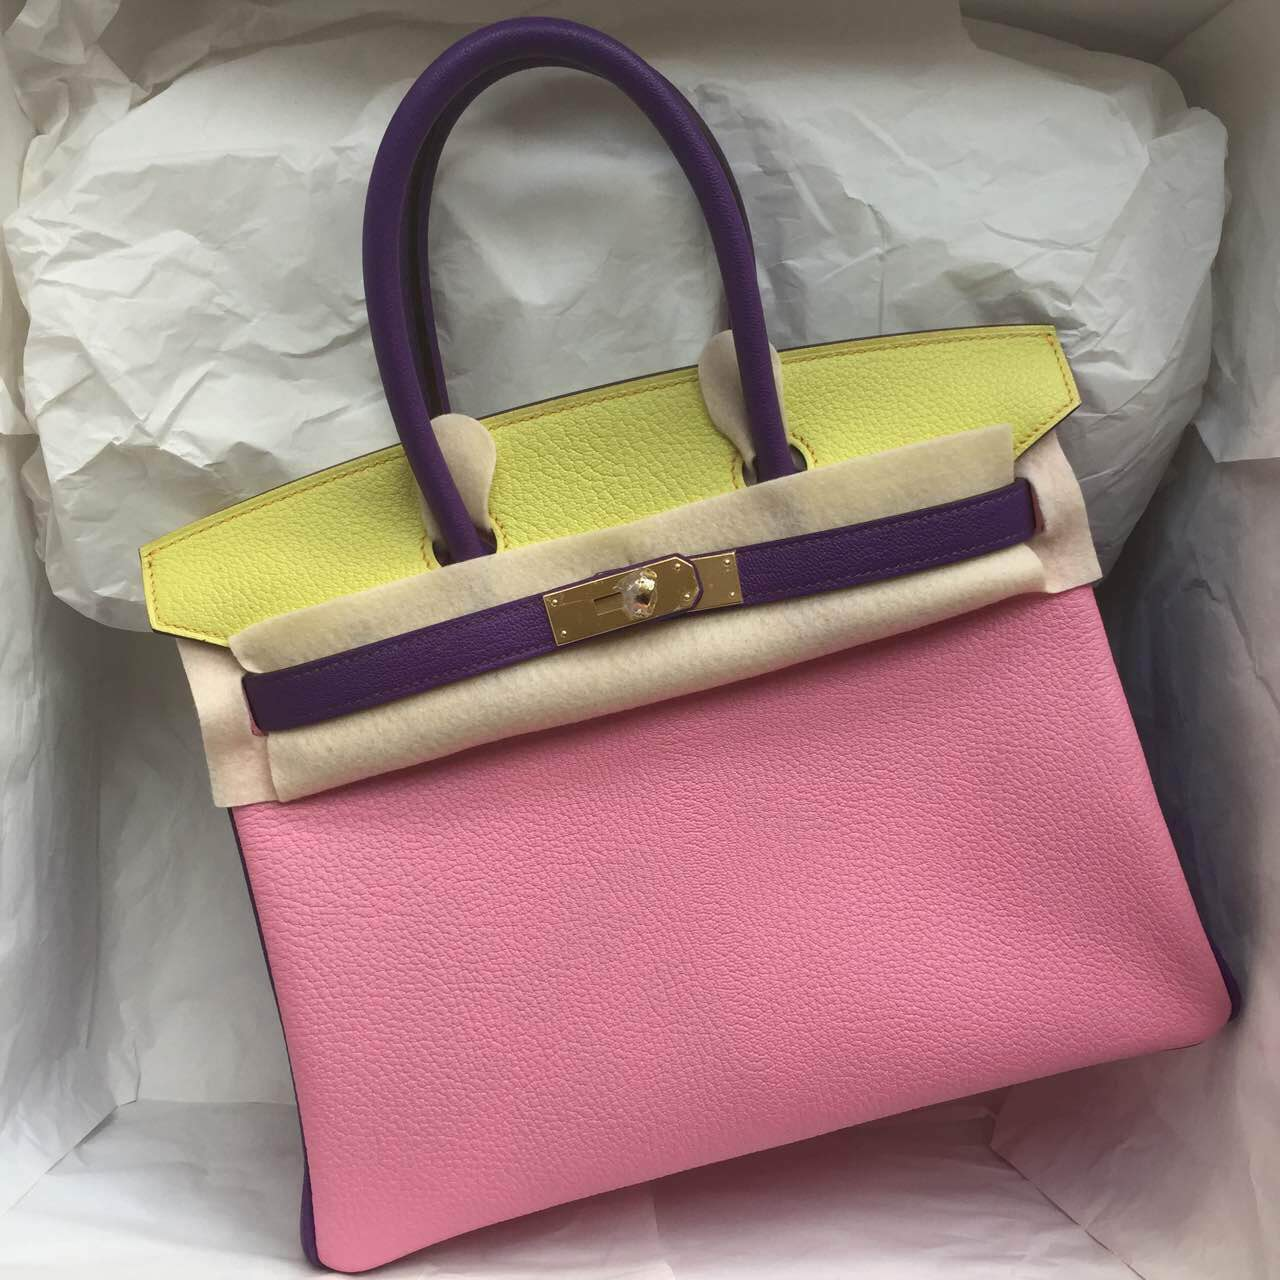 Cheap Hermes Birkin Bag 30cm Purple & Yellow & Pink Chevre Leather Handbag